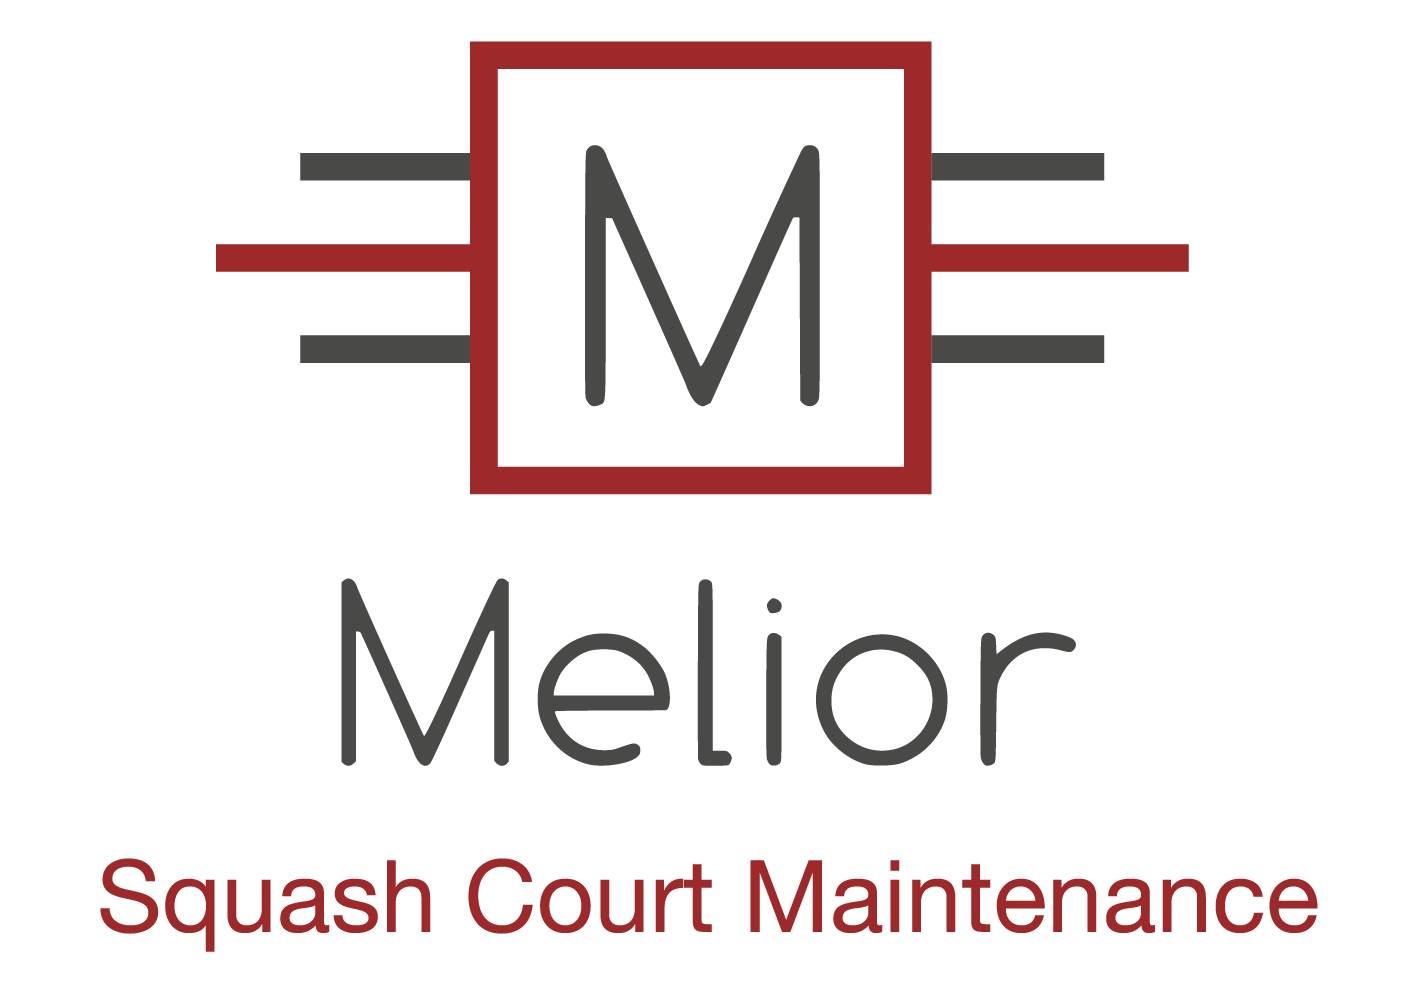 Melior Squash Court Maintenance logo